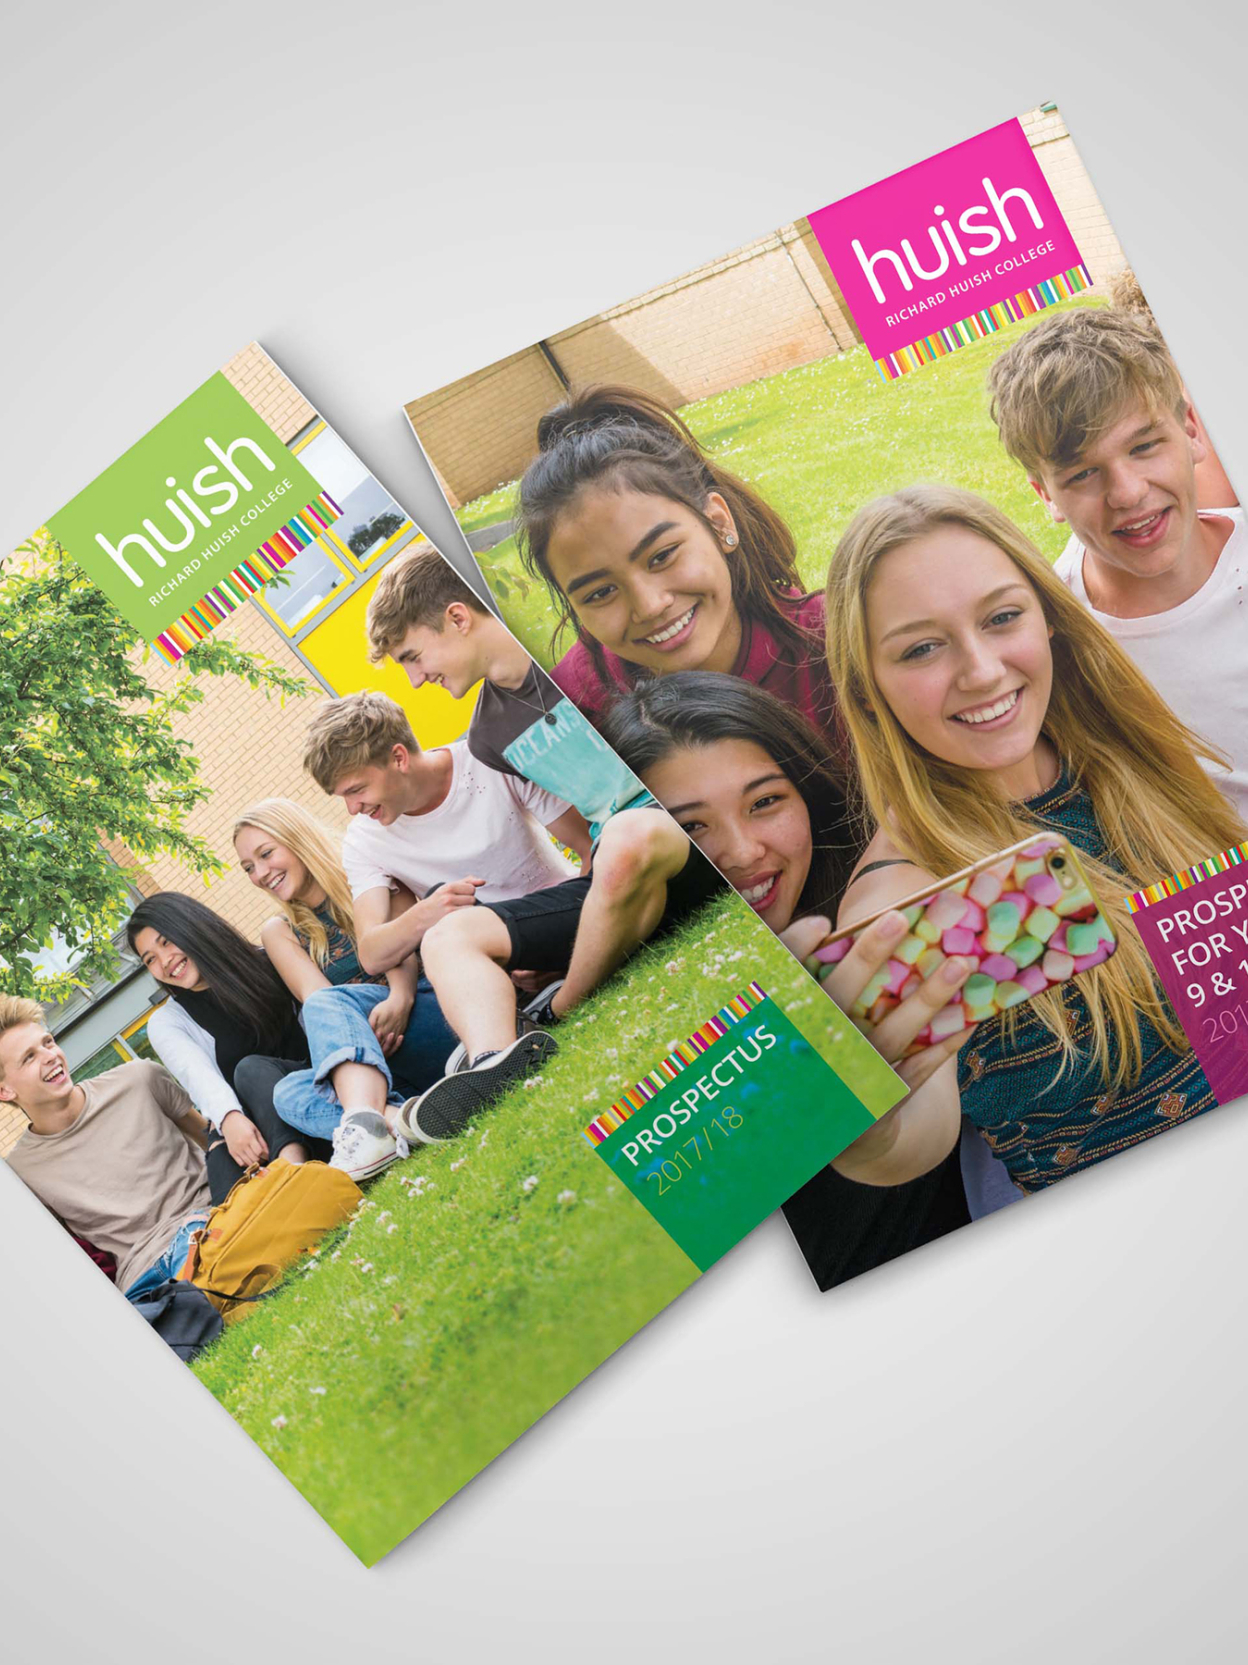 Huish Prospectus Covers in Portfolio page